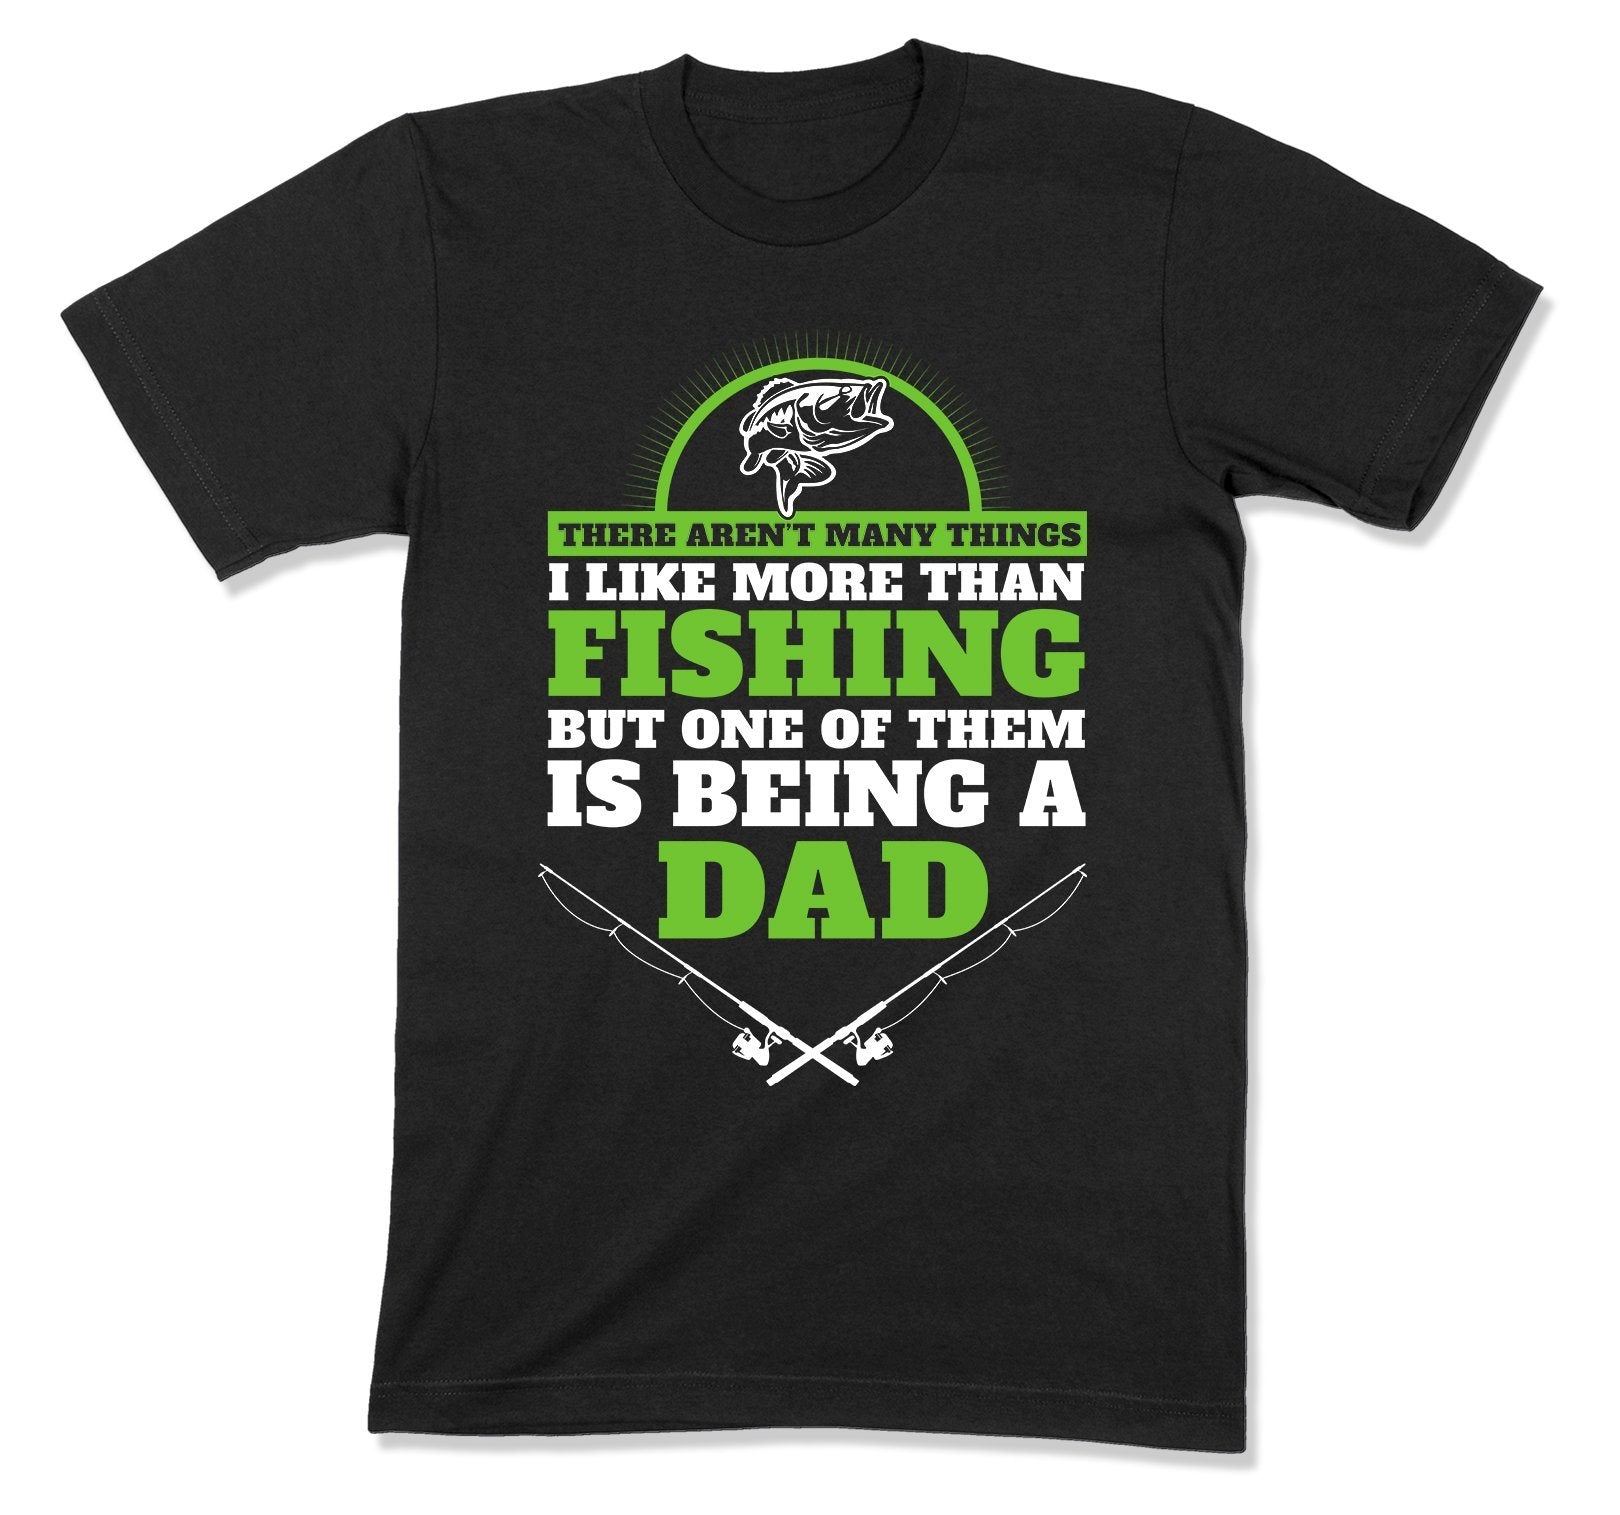 There Aren't Many Things I Like More Than Fishing T-Shirt - MD-442